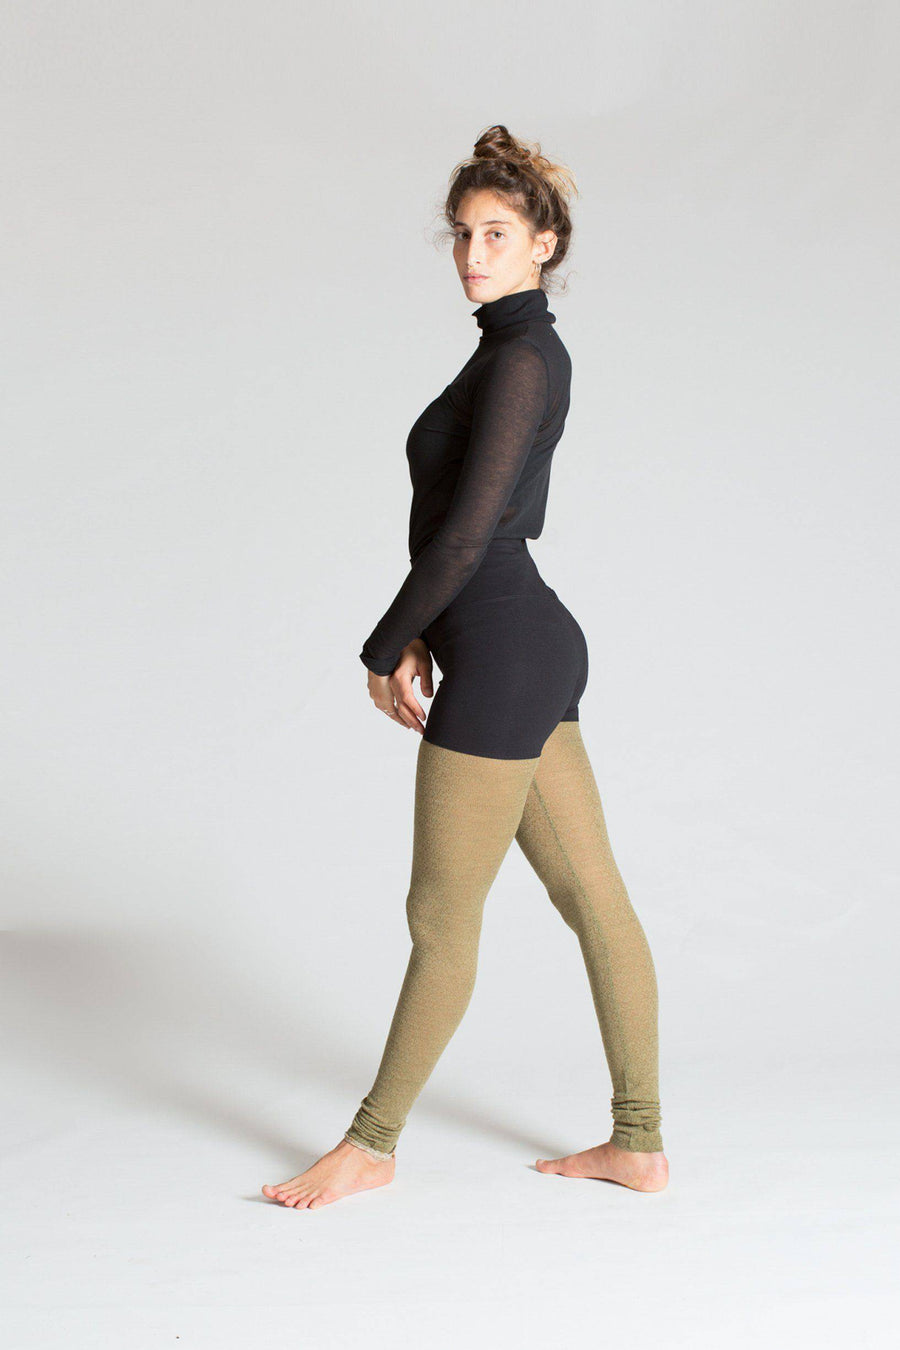 Limited Edition Zen Warrior Tights womens clothing rippleyogawear Black and Textured Olive S